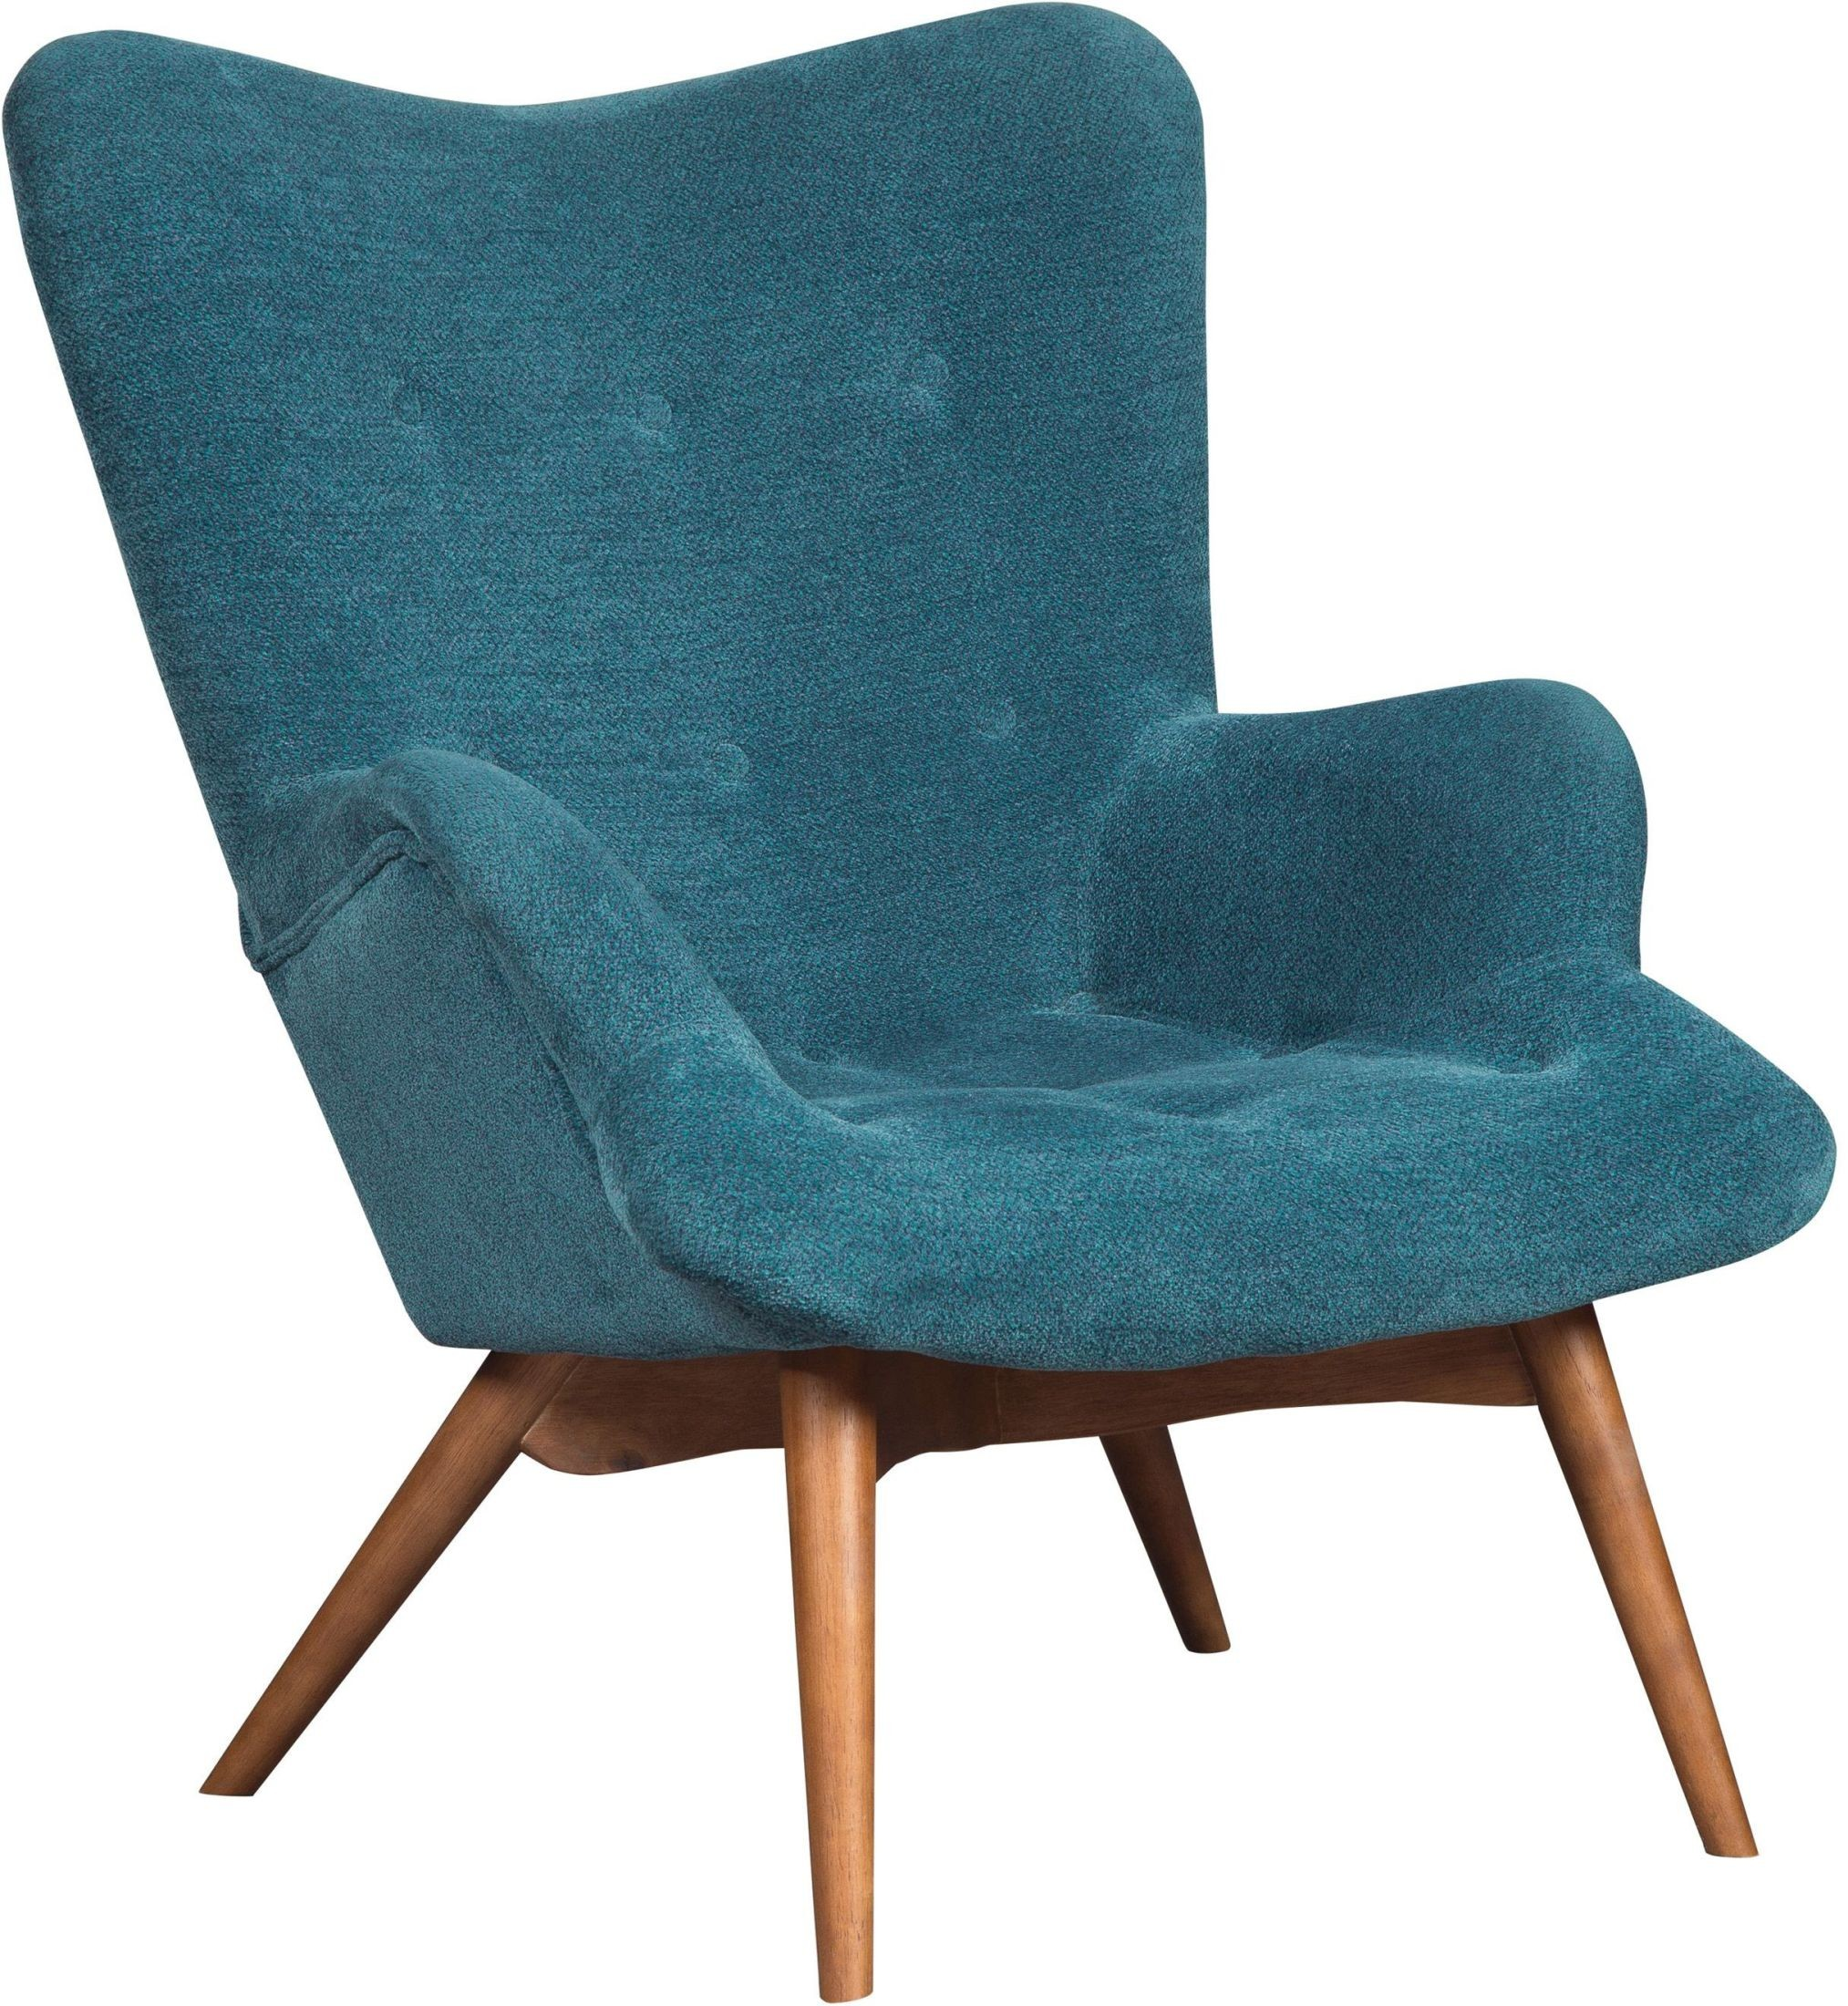 Pelsor Turquoise Accent Chair from Ashley  Coleman Furniture